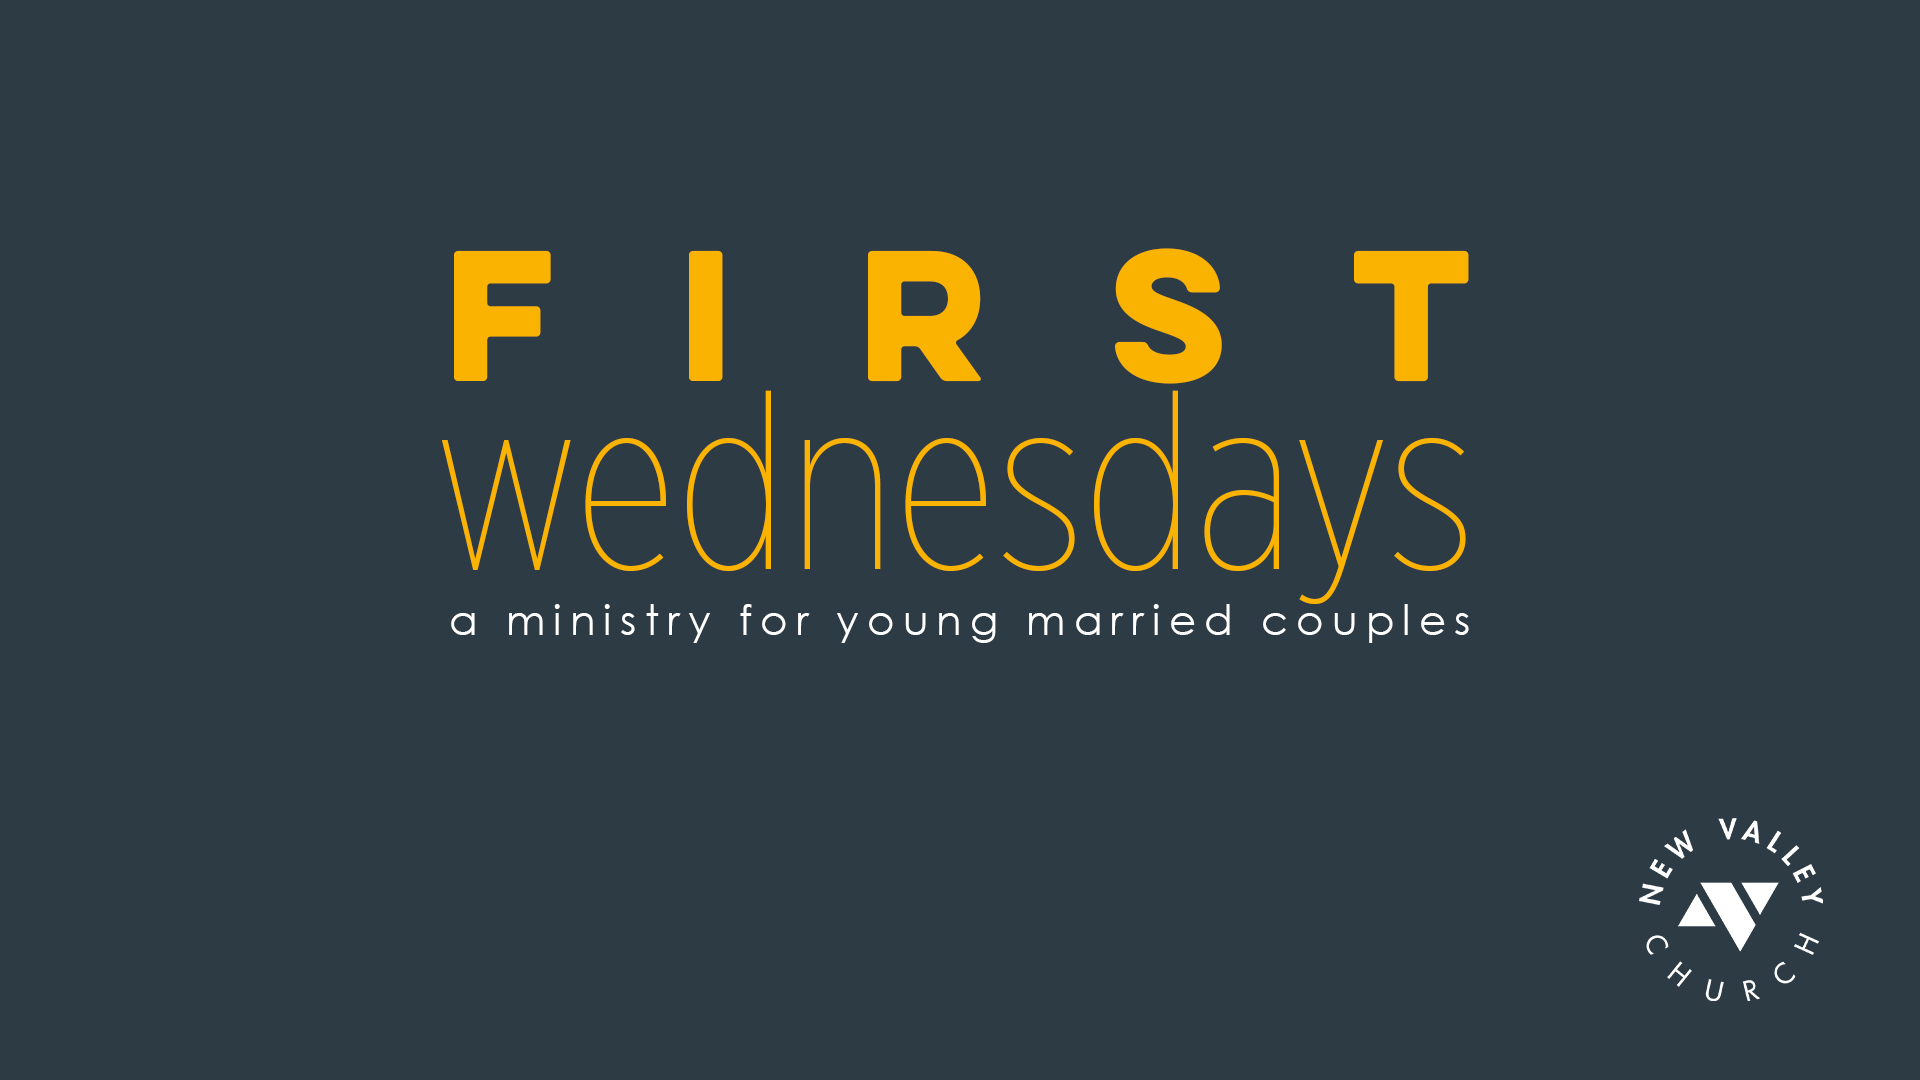 First Wed title 16x9 image